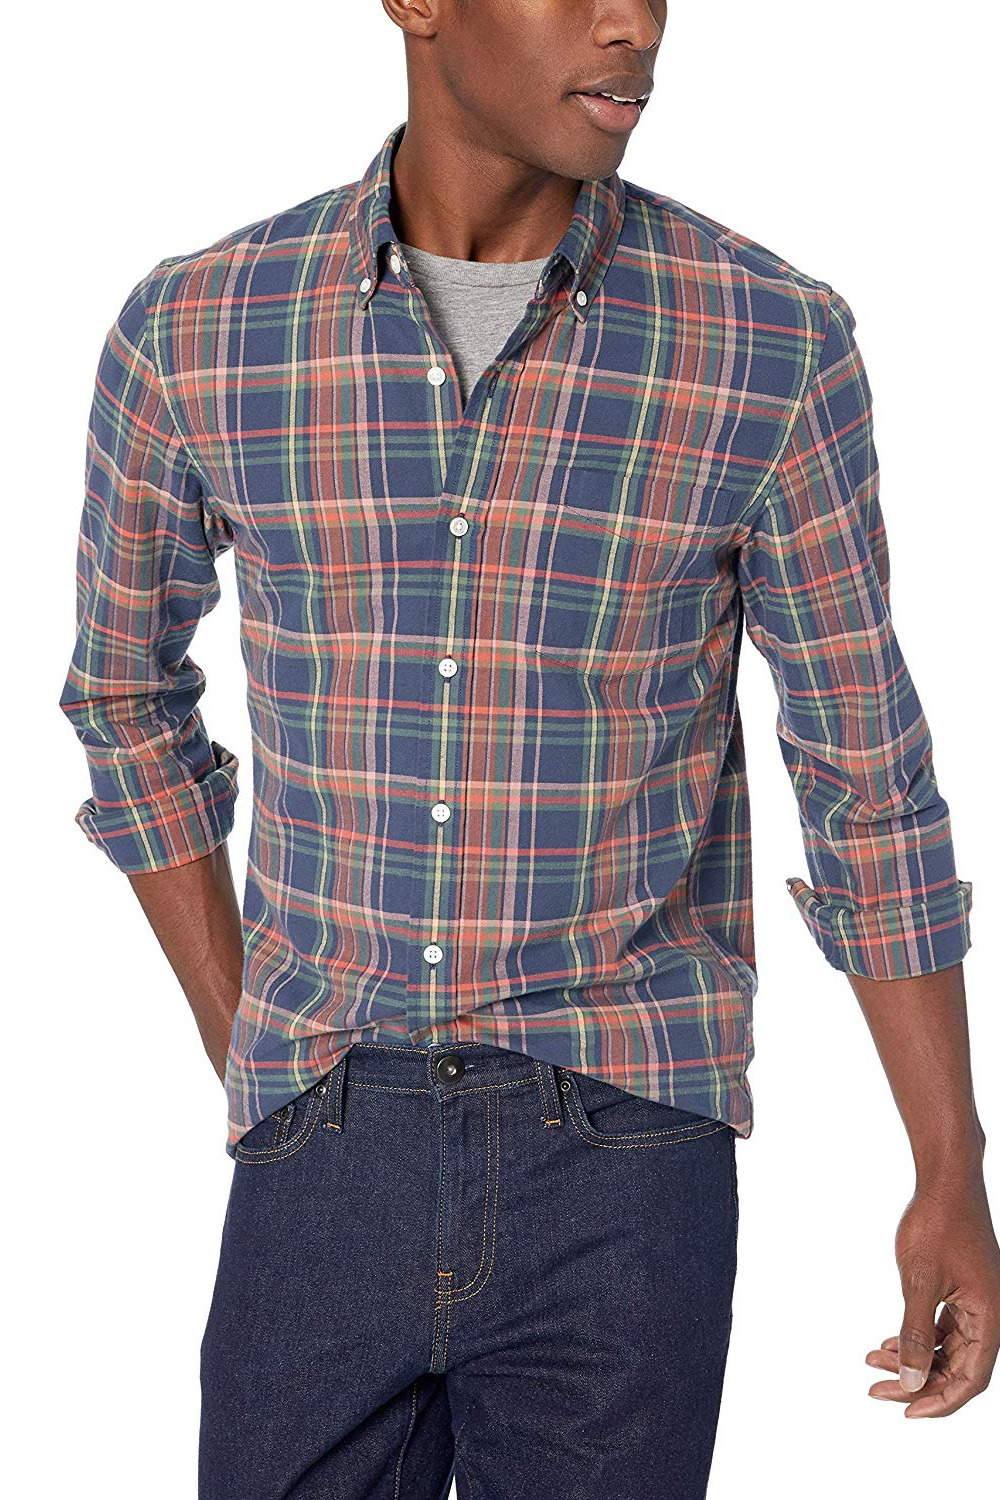 Goodthreads Men's Slim-Fit Long-Sleeve Plaid Oxford Shirt